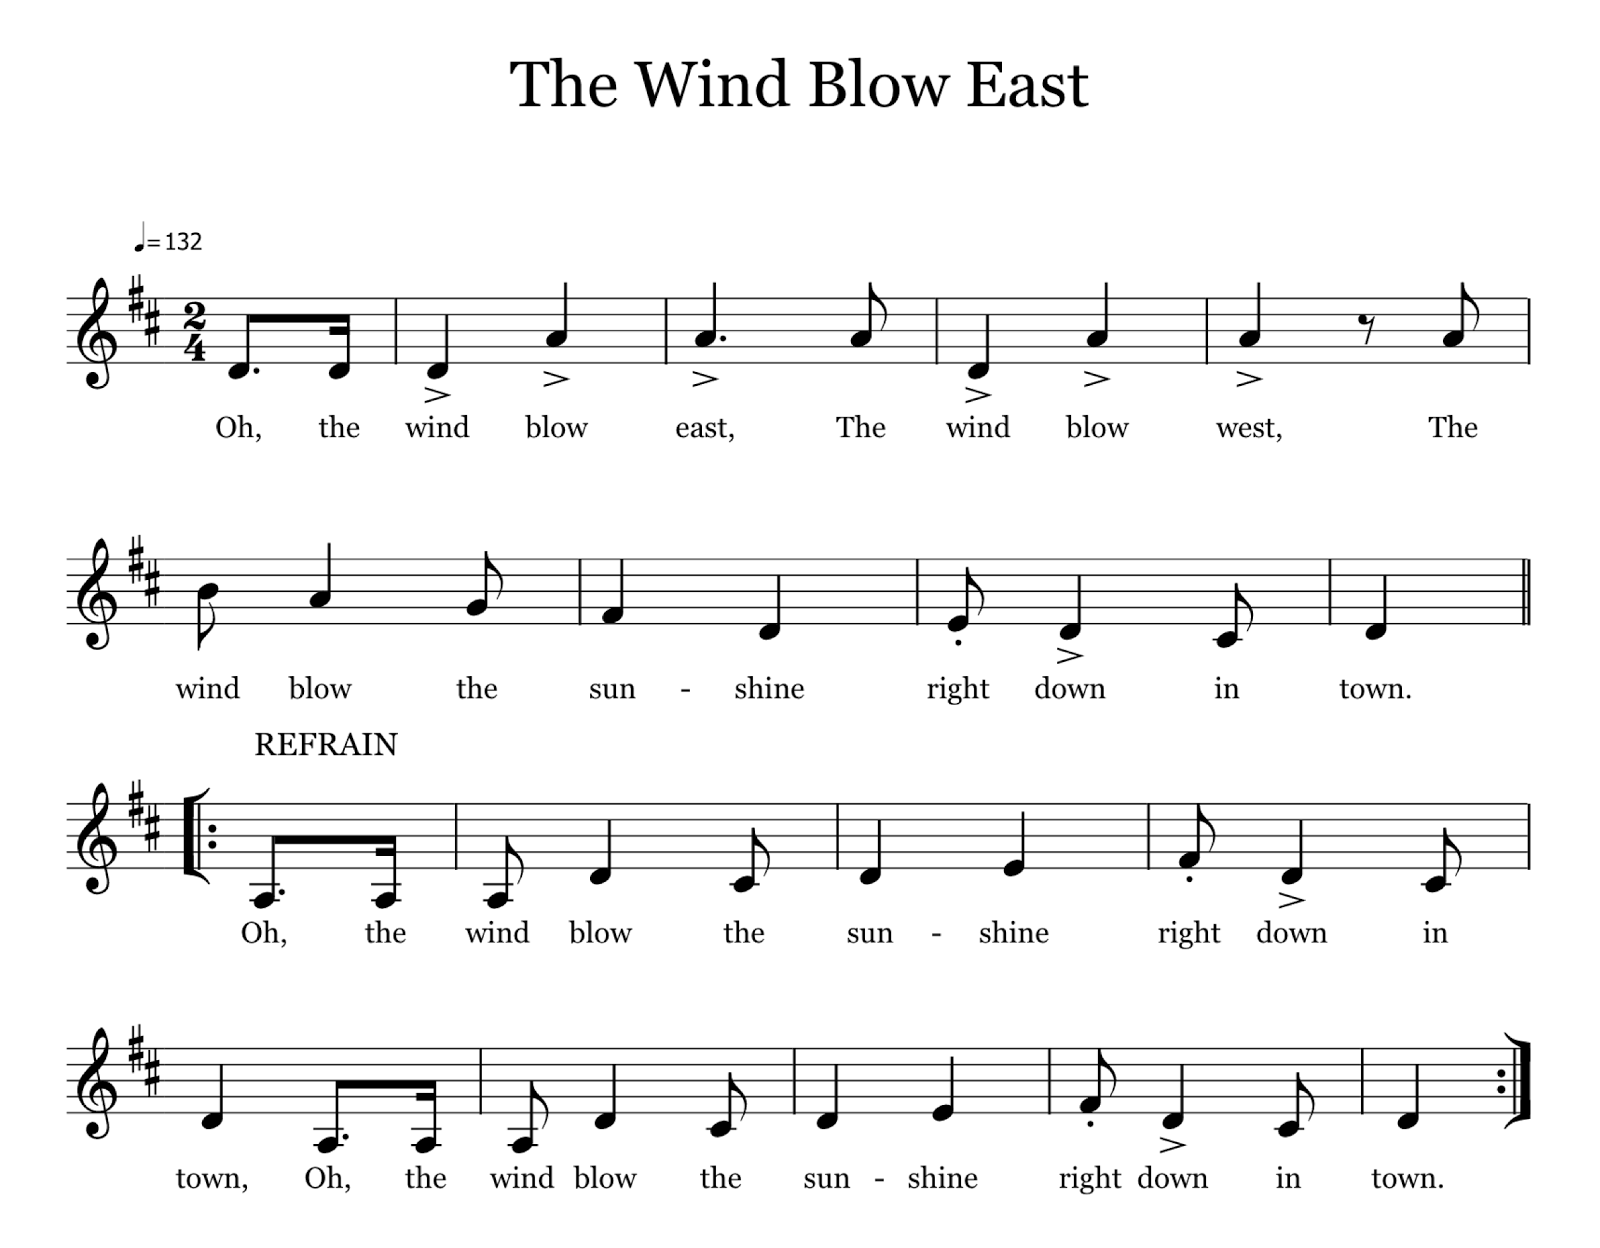 The Wind Blow East